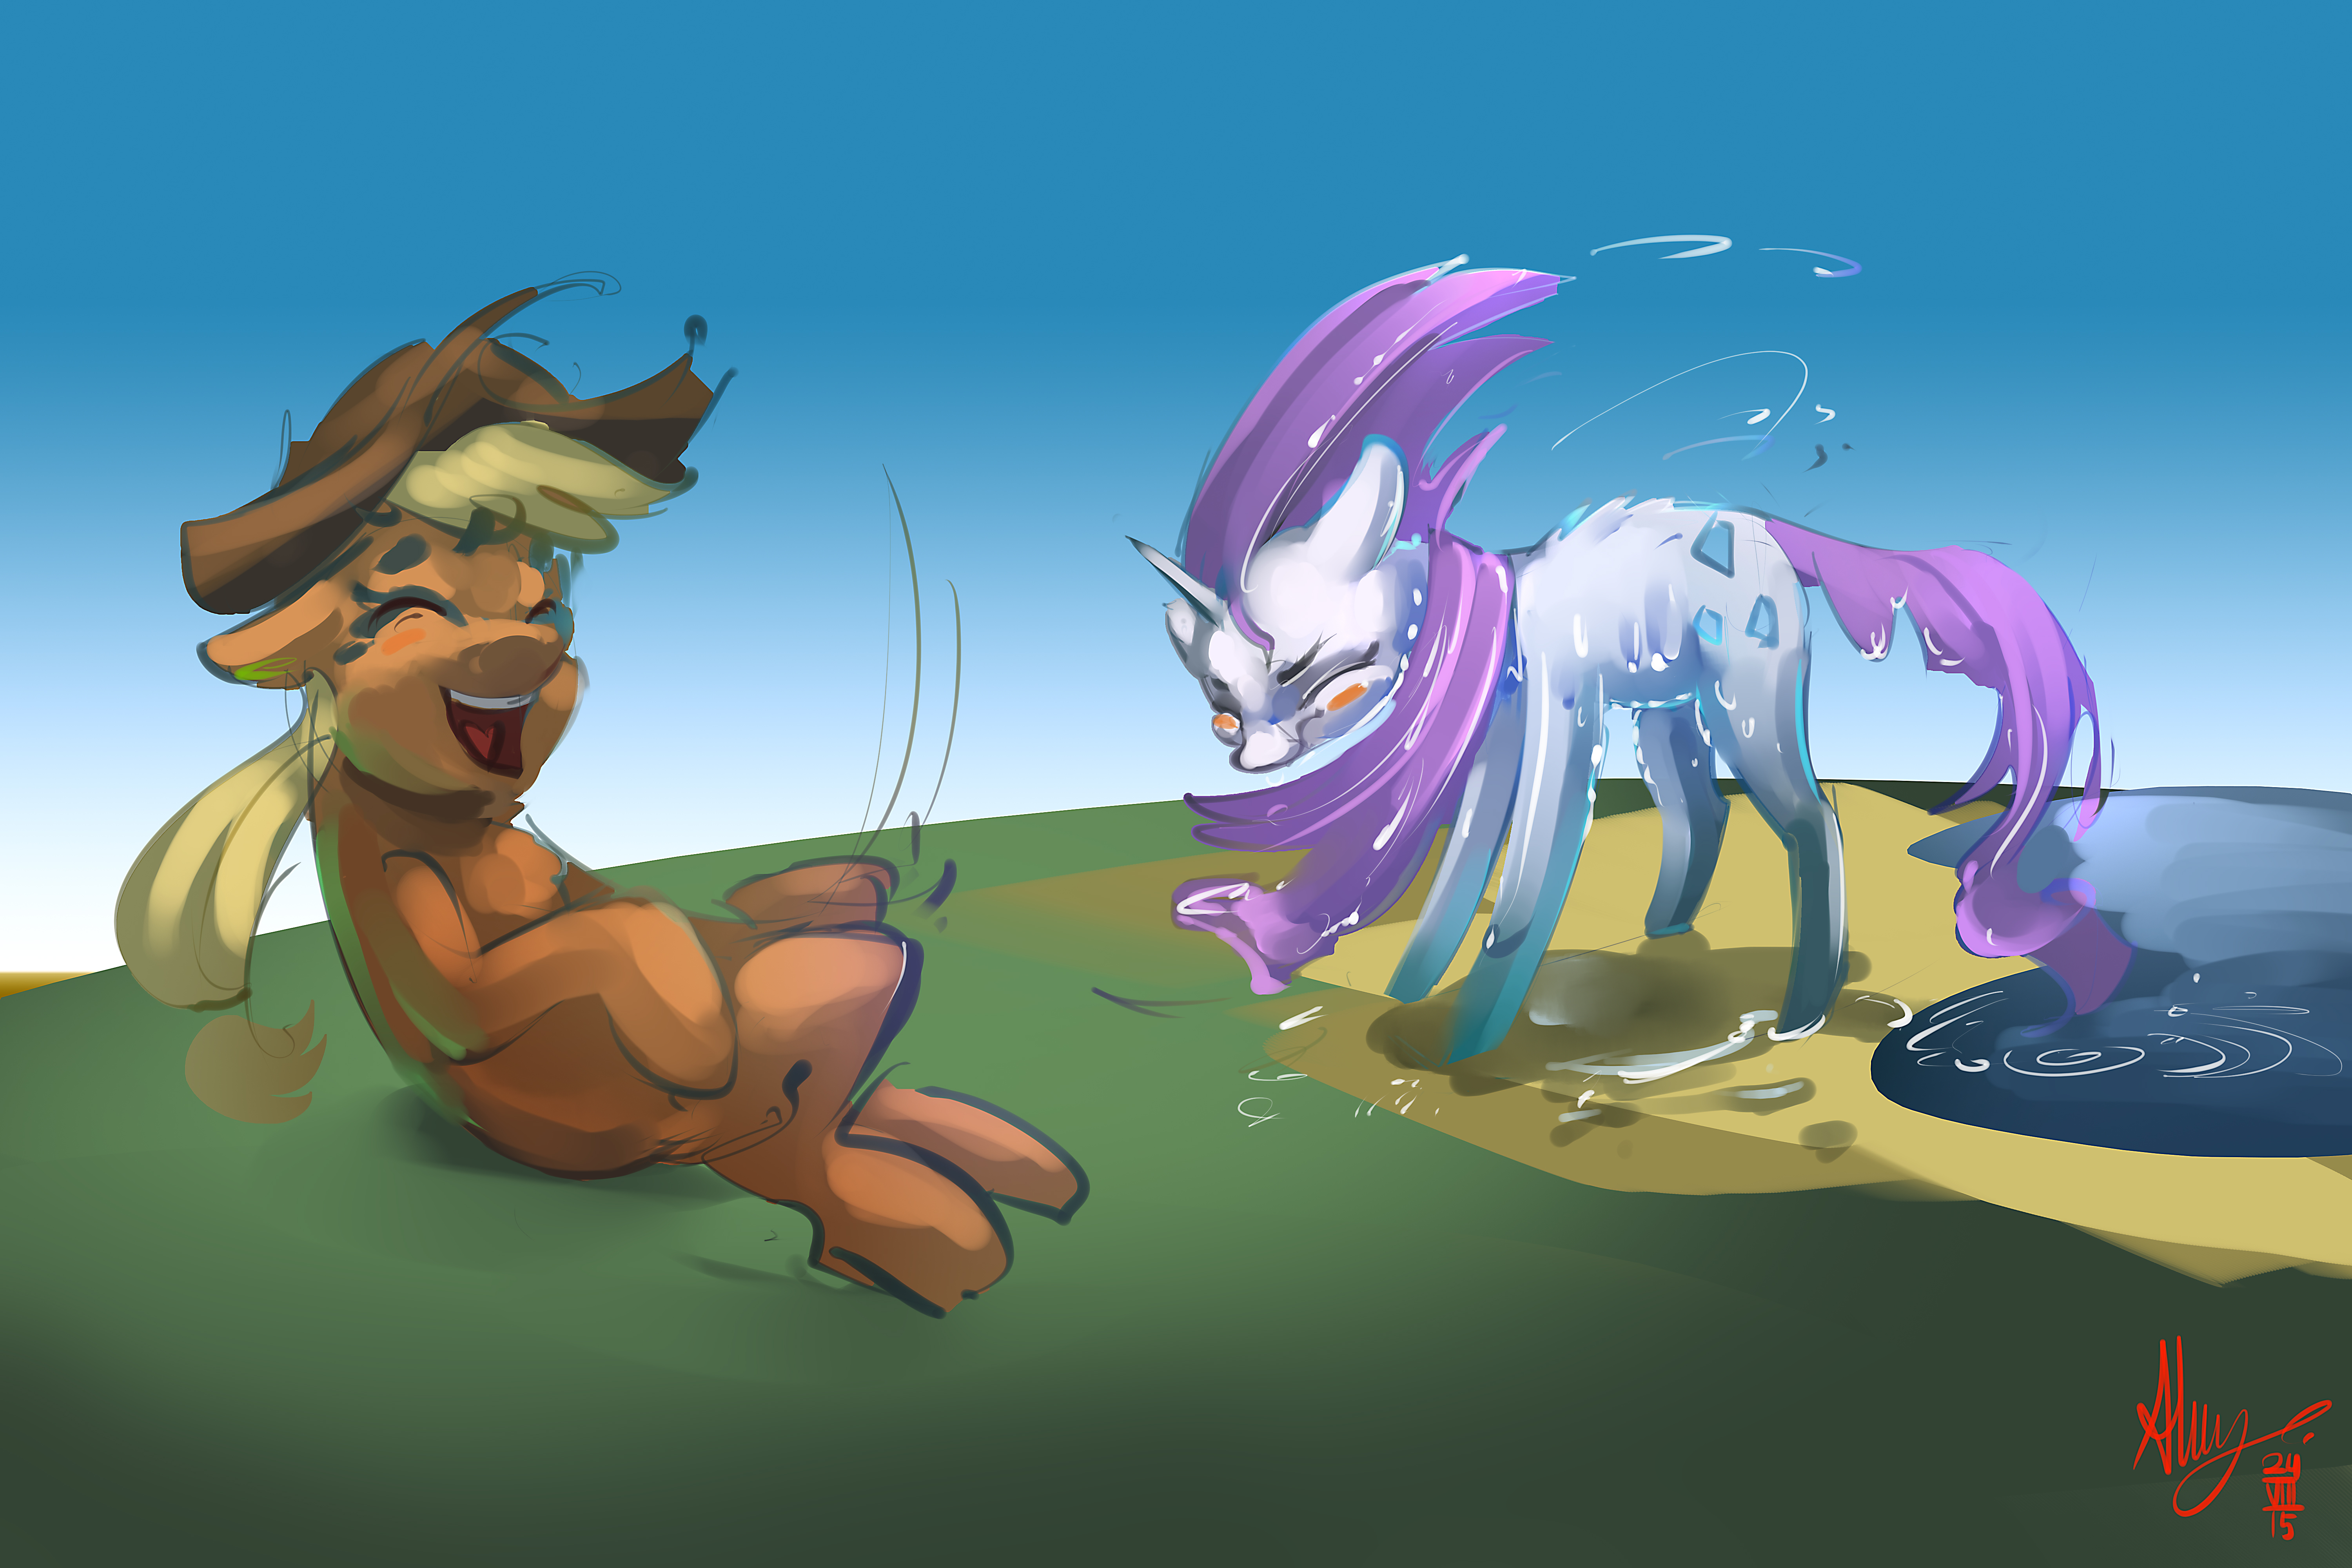 ATG V - Day 2 (Drawing a pony shaking)